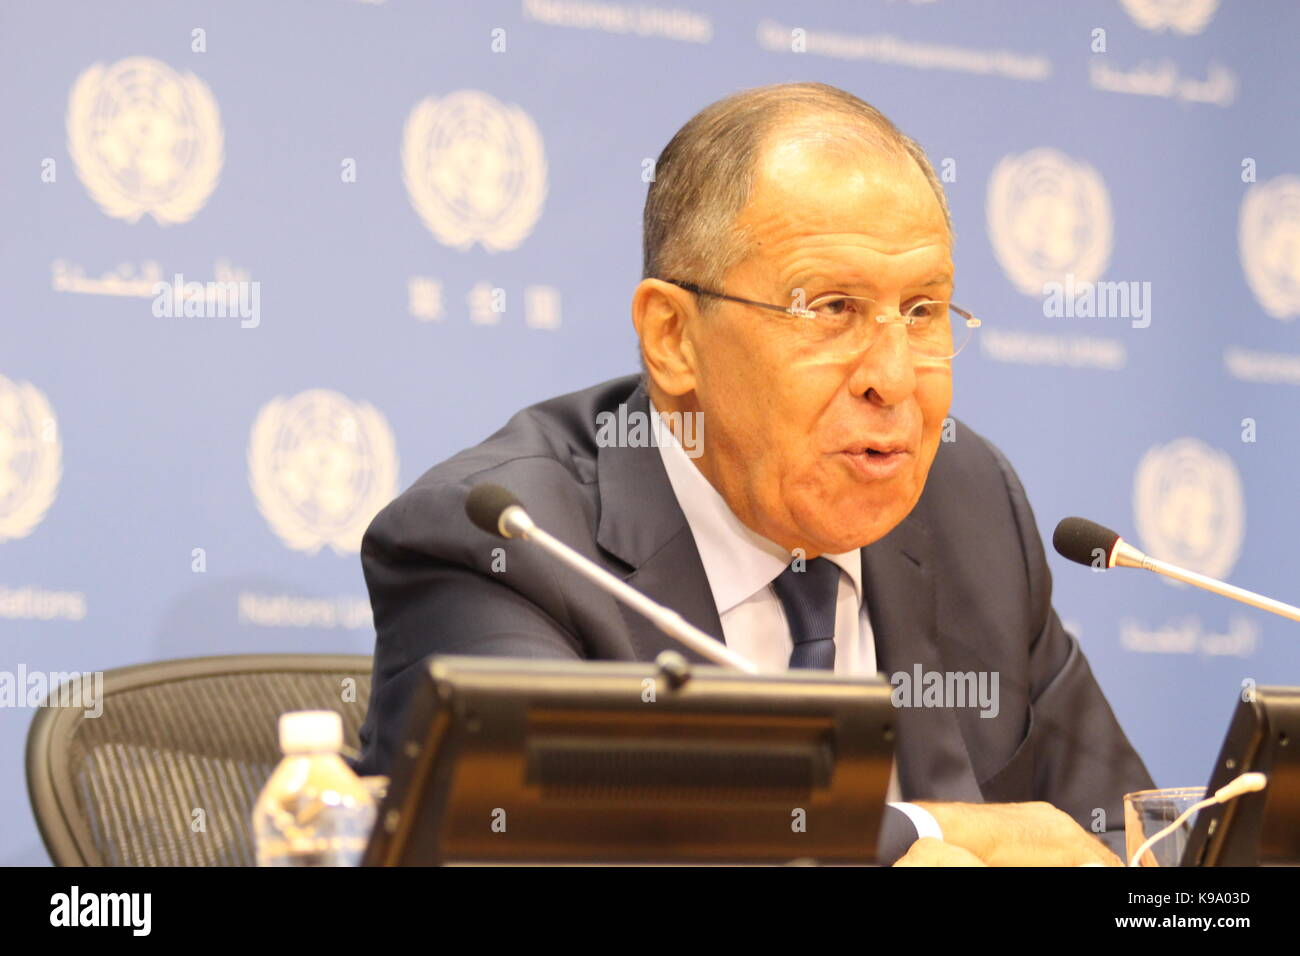 UN, New York, USA. 22nd Sep, 2017. Sergey Lavrov, Russia's Foreign Minister, briefed the press on Syria, North - Stock Image